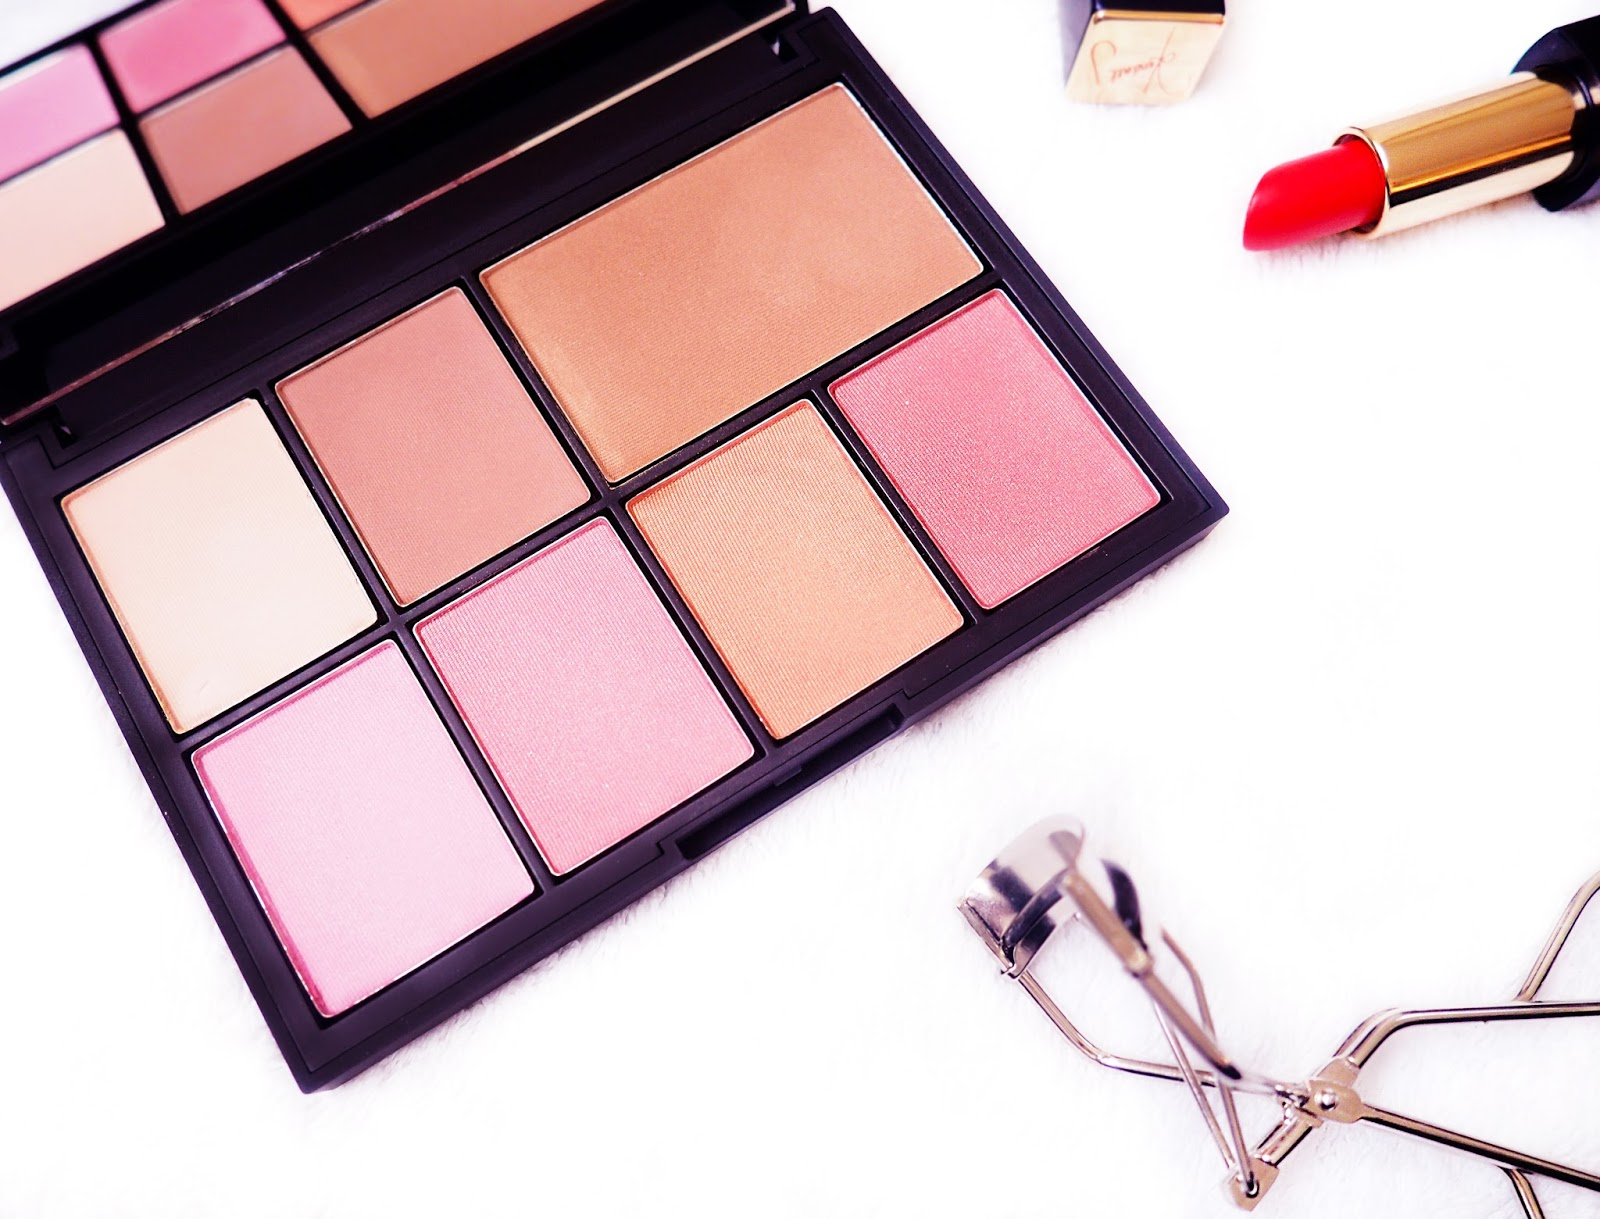 NARS Steven Klein One Shocking Moment Palette Review